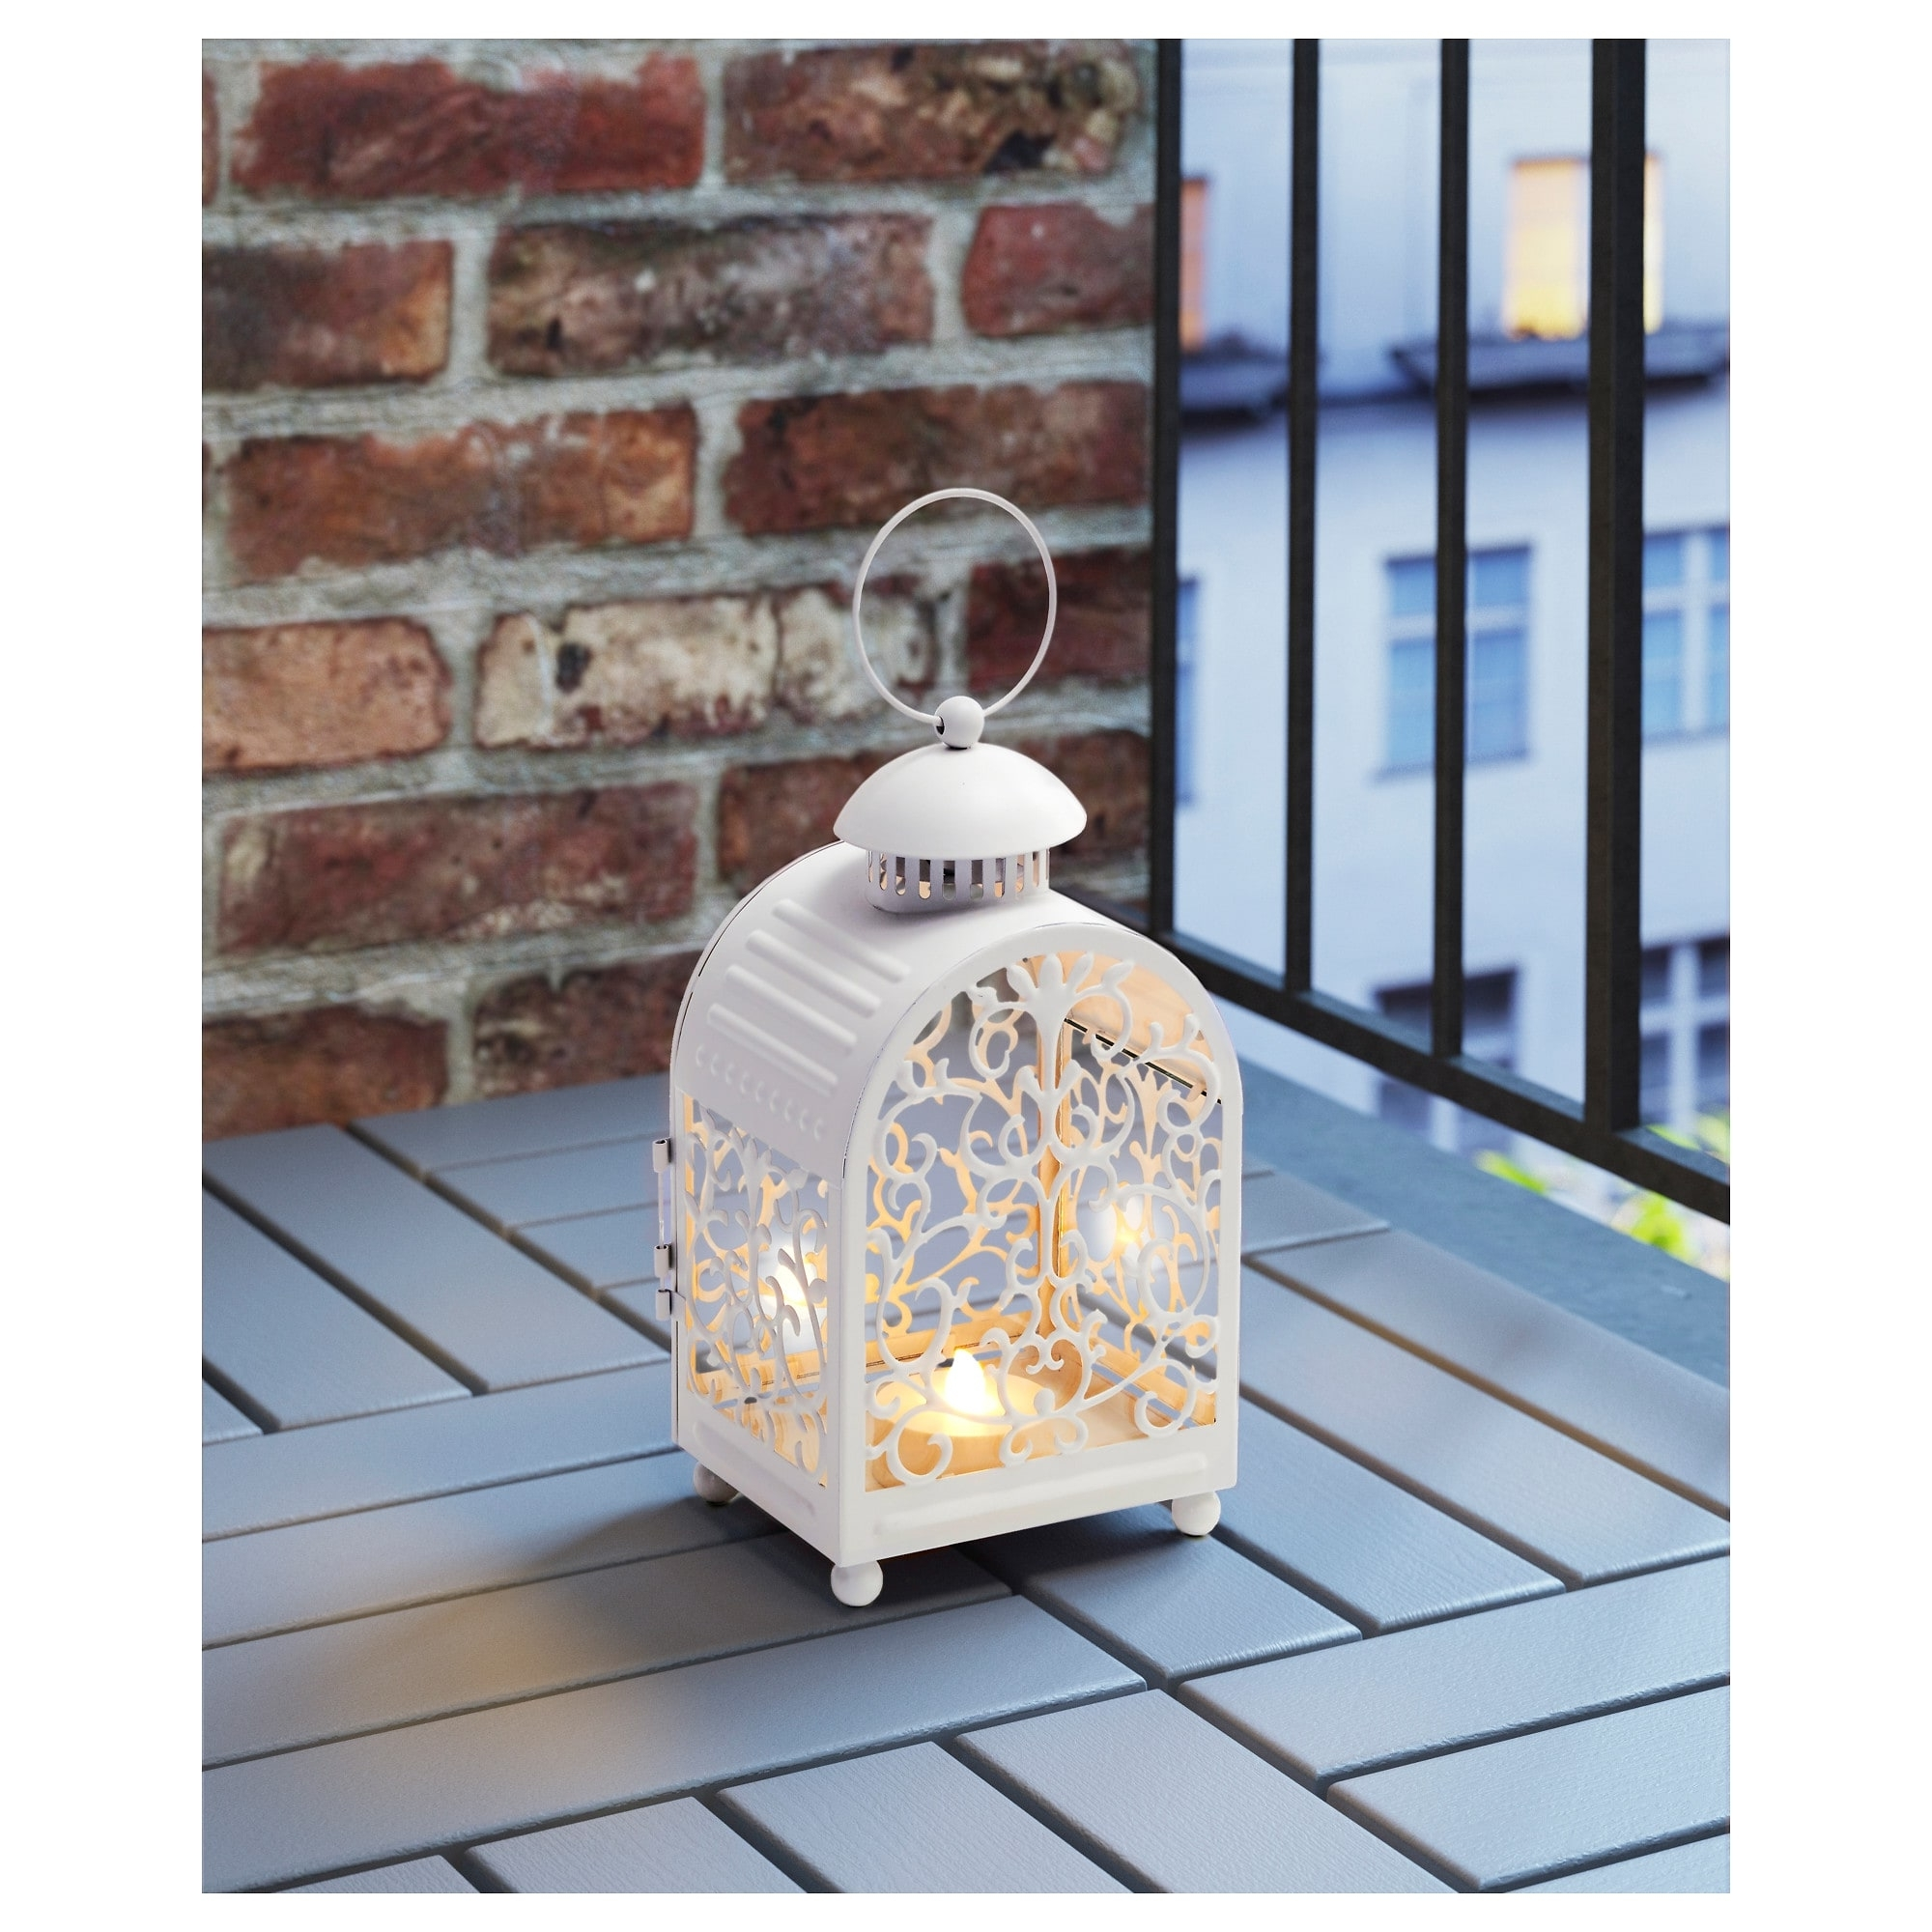 Outdoor Metal Lanterns For Candles Pertaining To Current Gottgöra Lantern For Candle In Metal Cup In/outdoor White 26 Cm – Ikea (View 12 of 20)